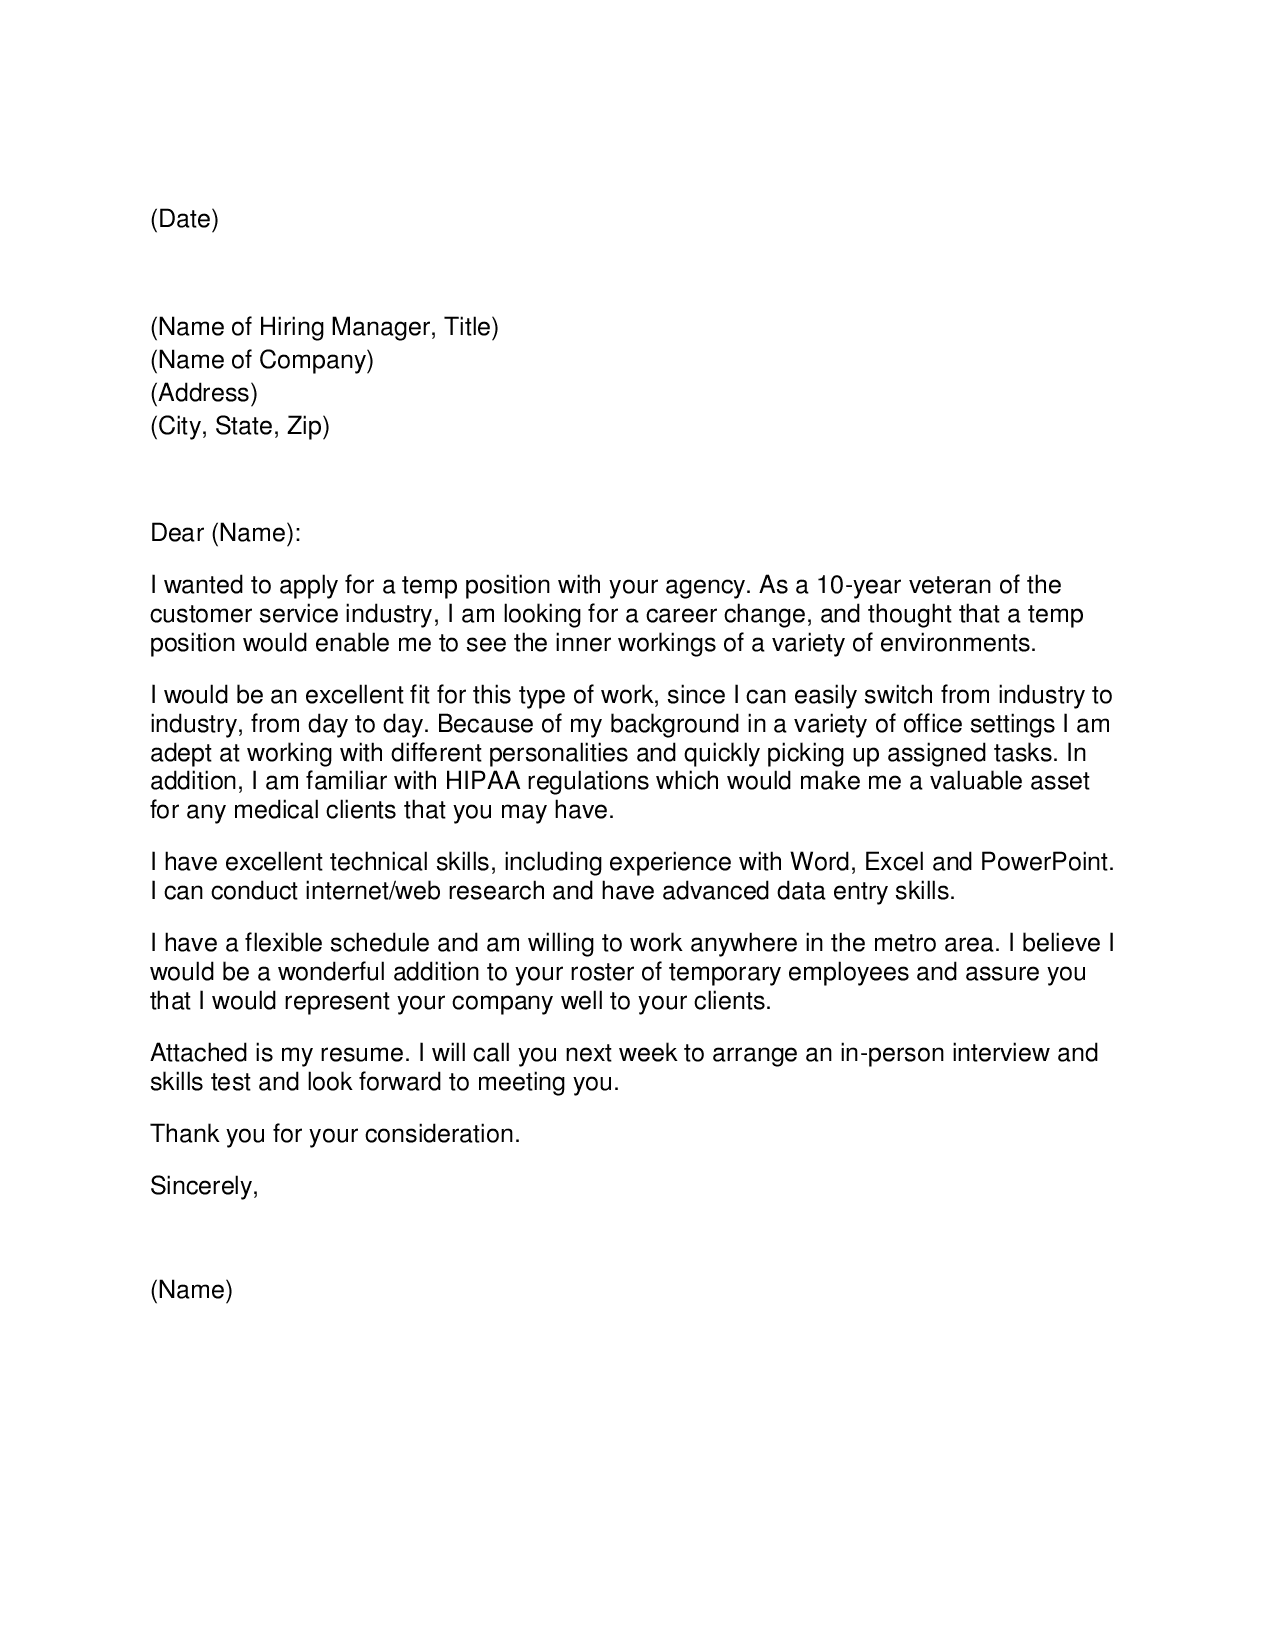 Essay About Helping Friends Creative Services Manager Cover Letter